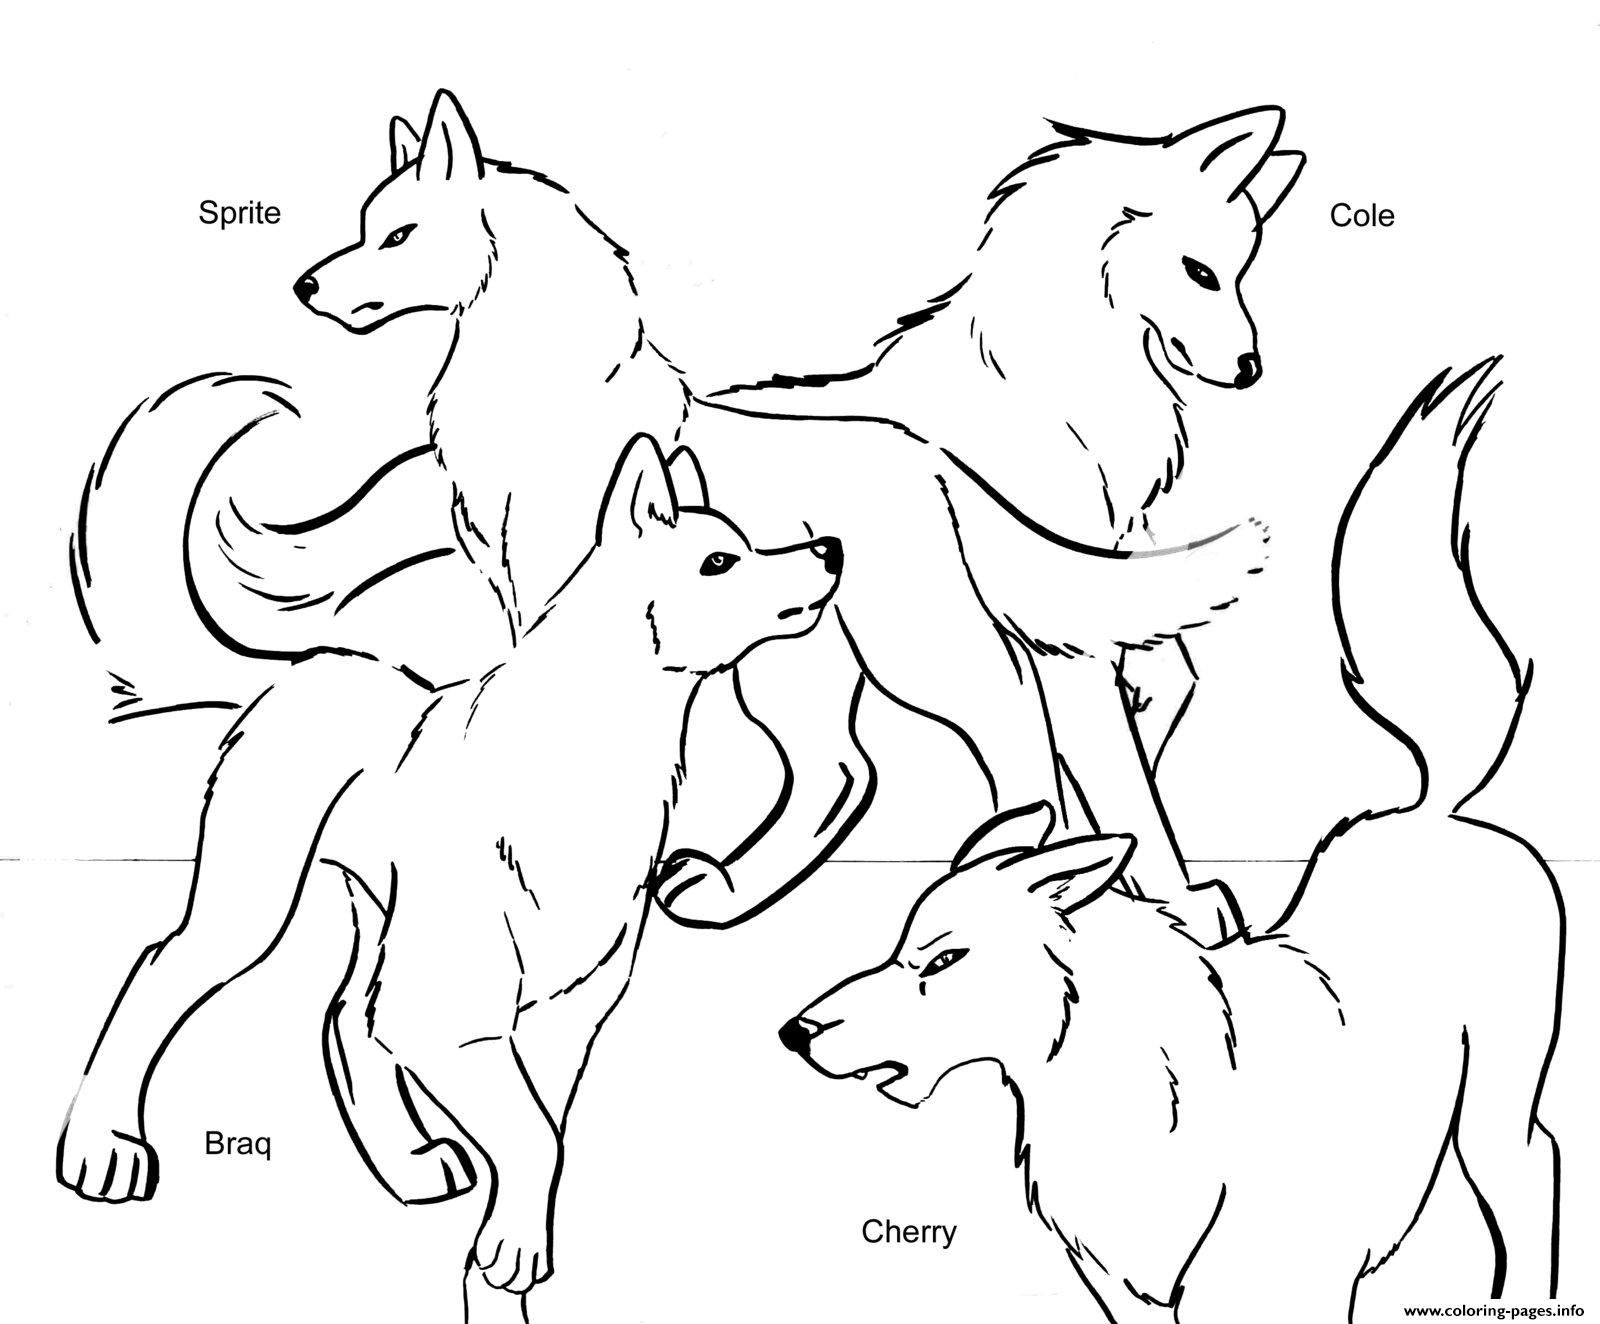 Wolf to print coloring pages for free wolf to print coloring pages - Coloring Pages For Girls 11 And Up Wolves